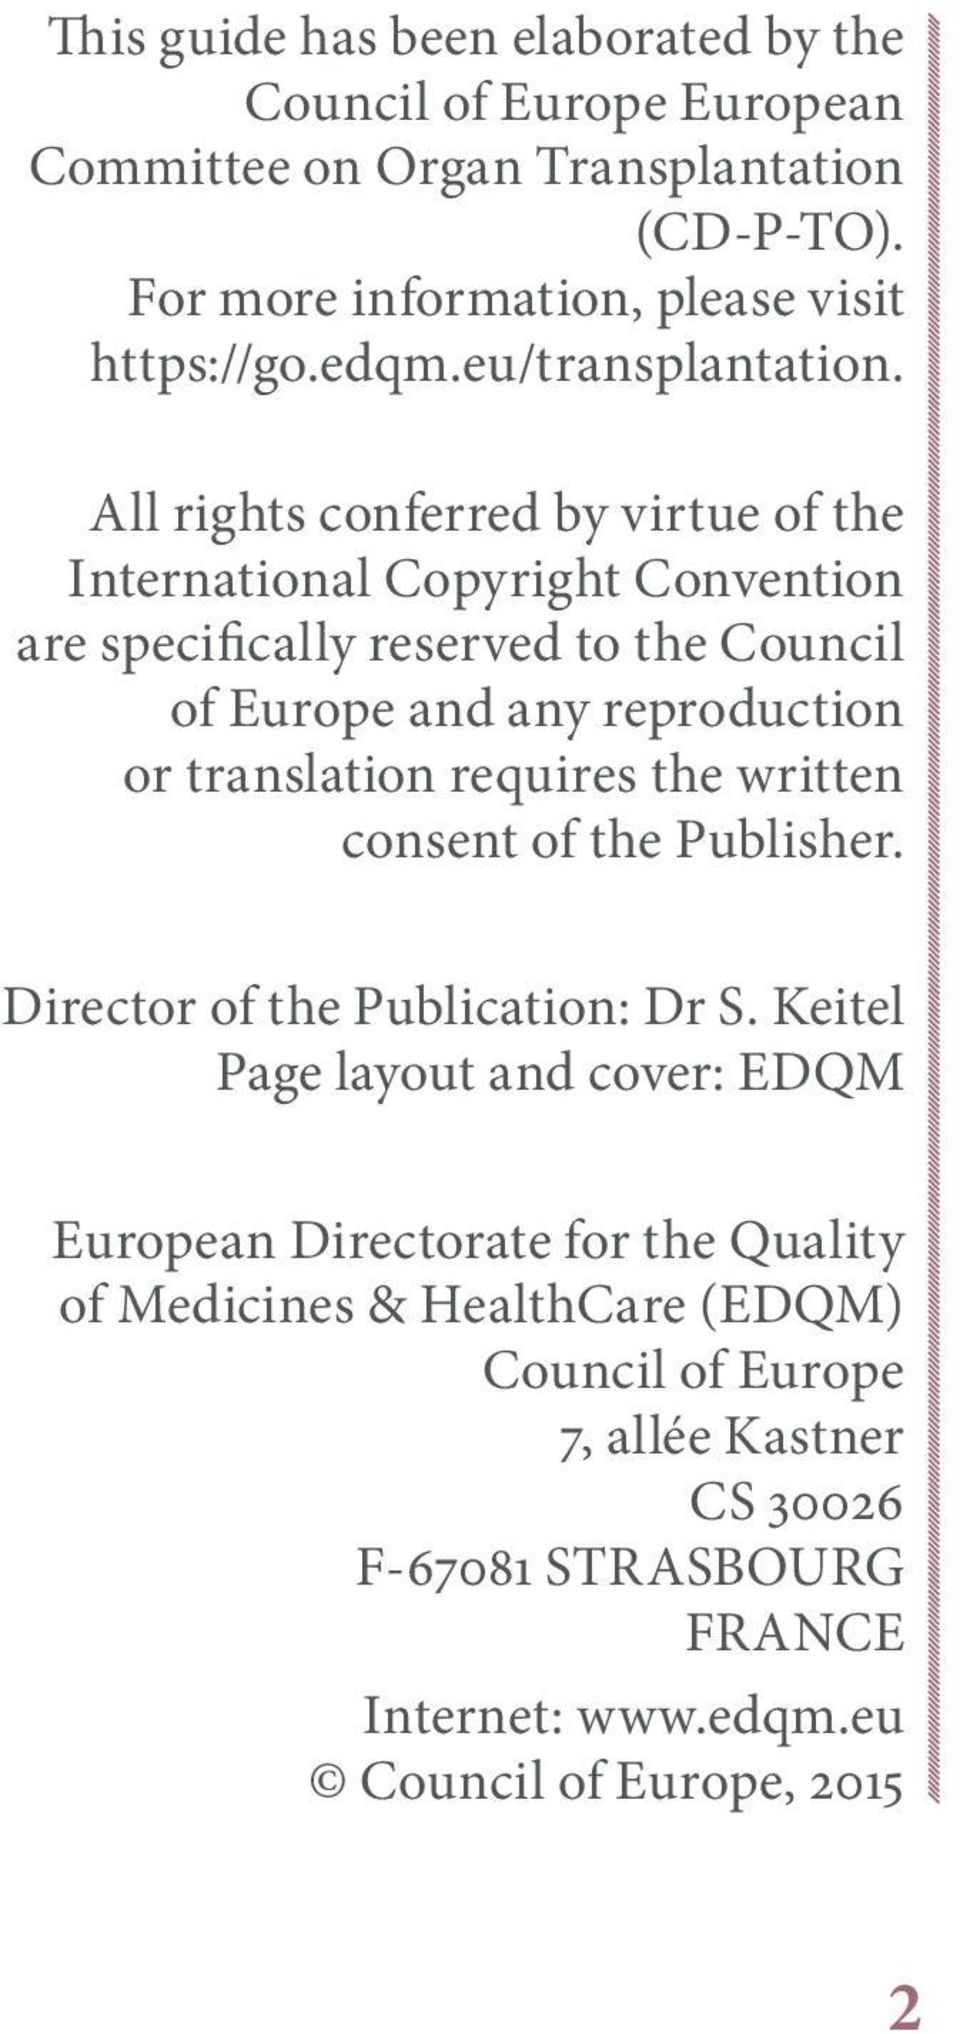 All rights conferred by virtue of the International Copyright Convention are specifically reserved to the Council of Europe and any reproduction or translation